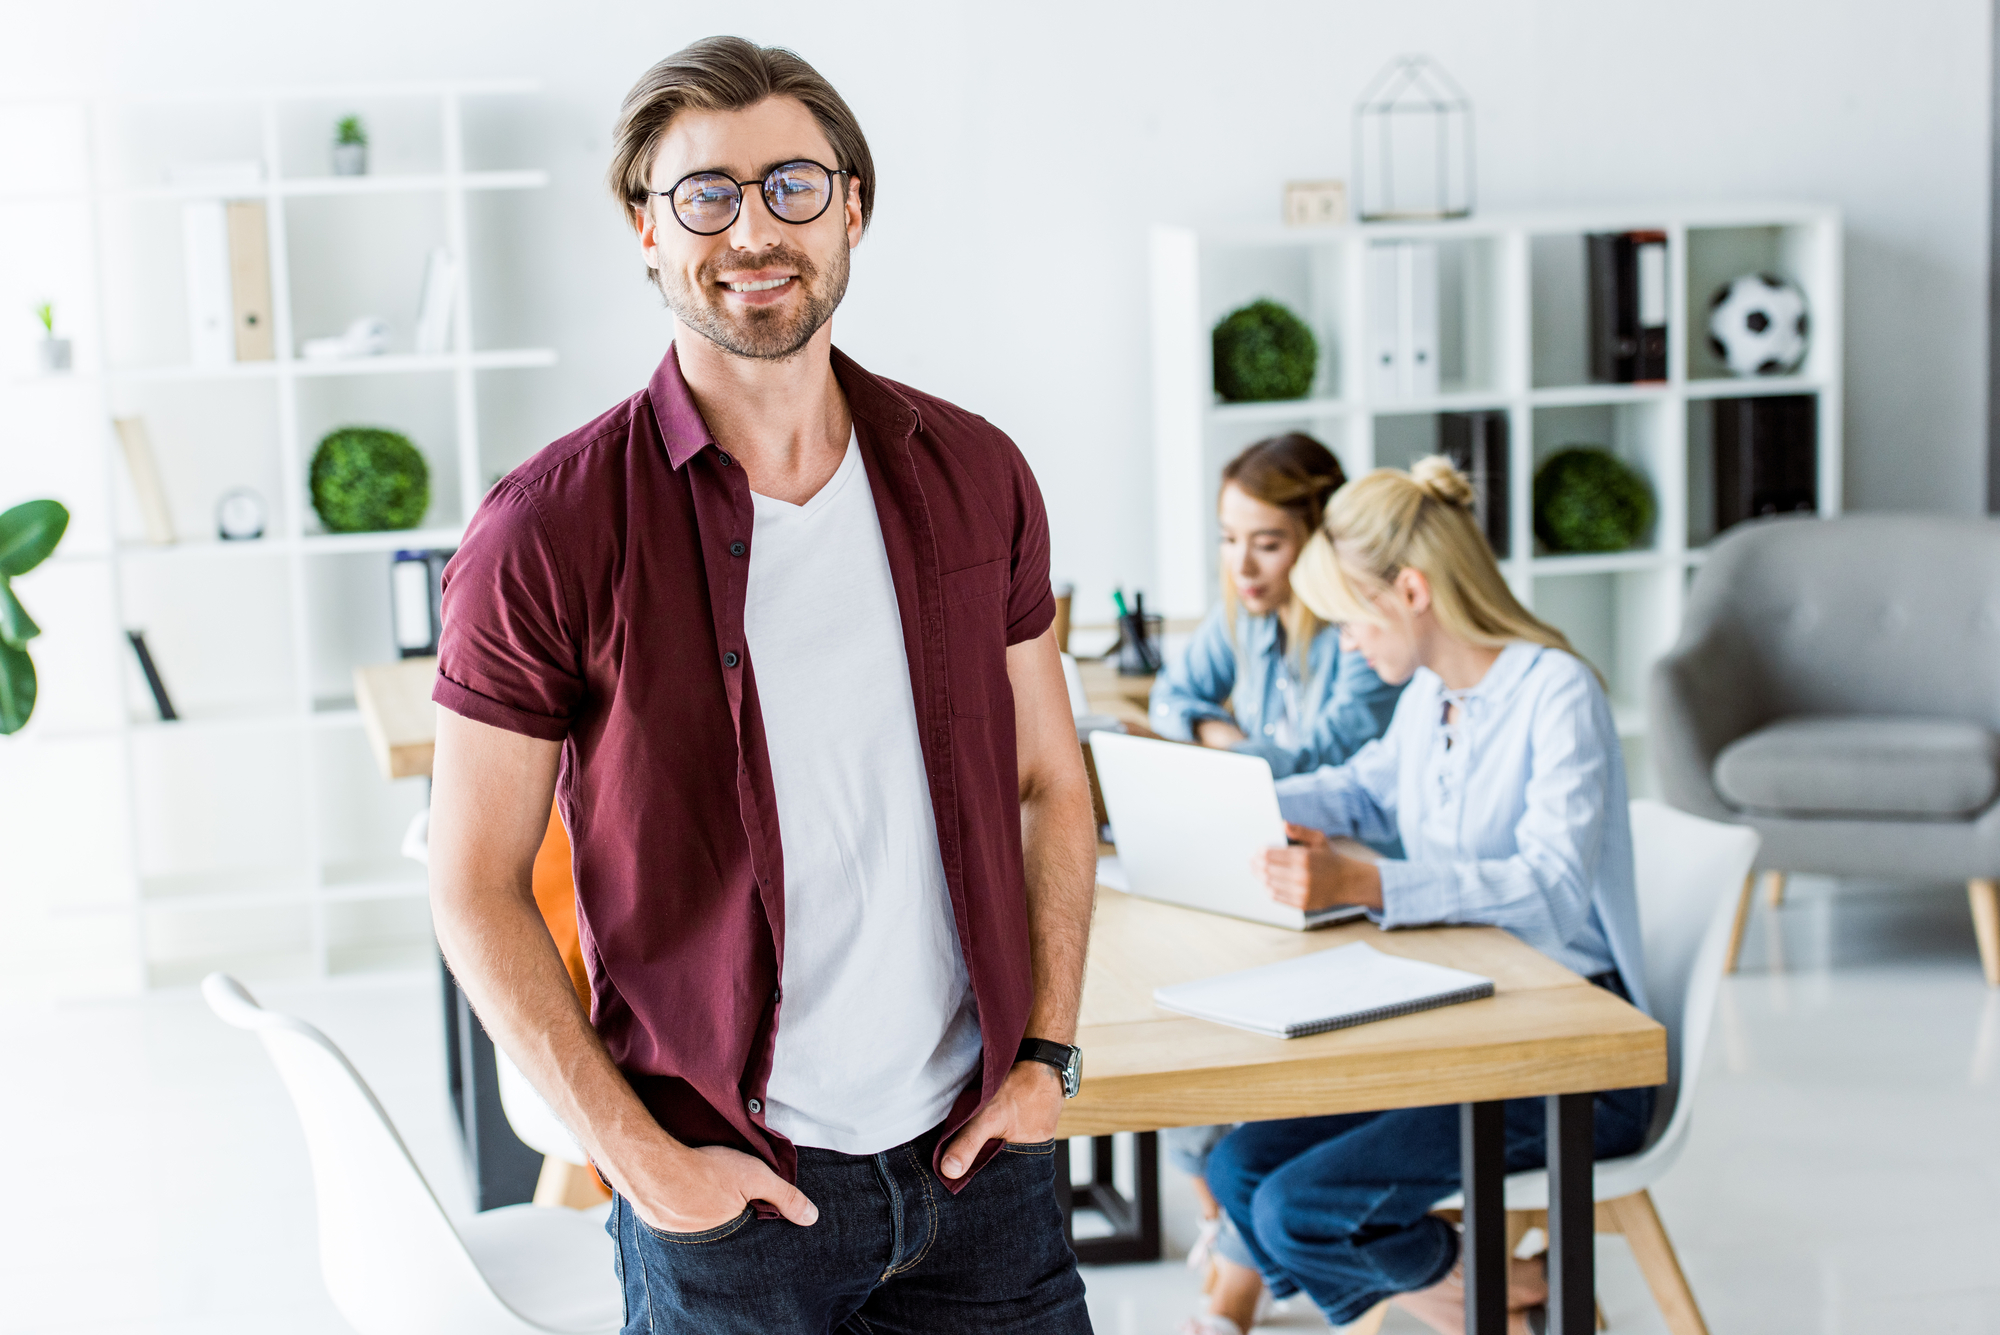 Handsome man standing in office of startup project and looking at camera